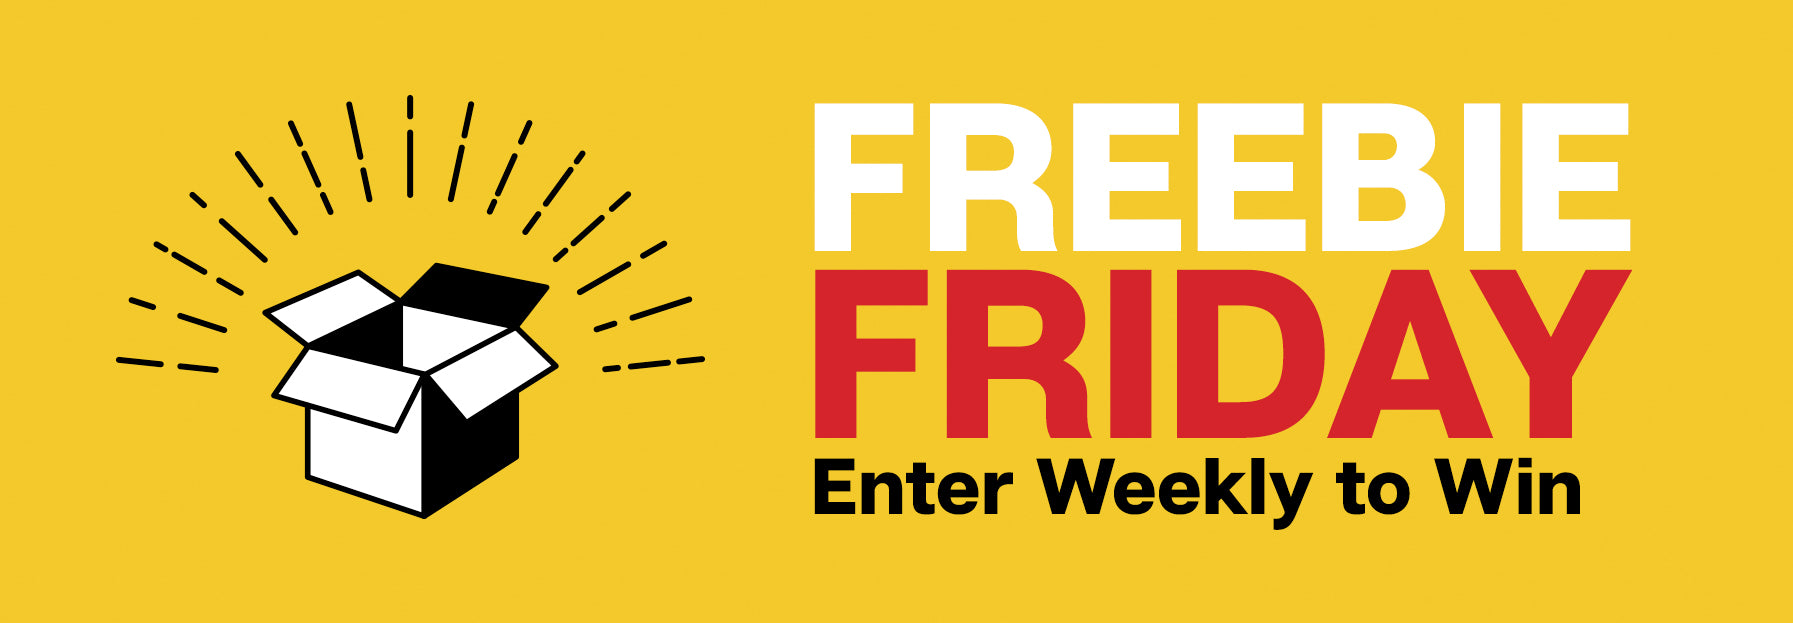 Freebie Friday. Enter Weekly to Win